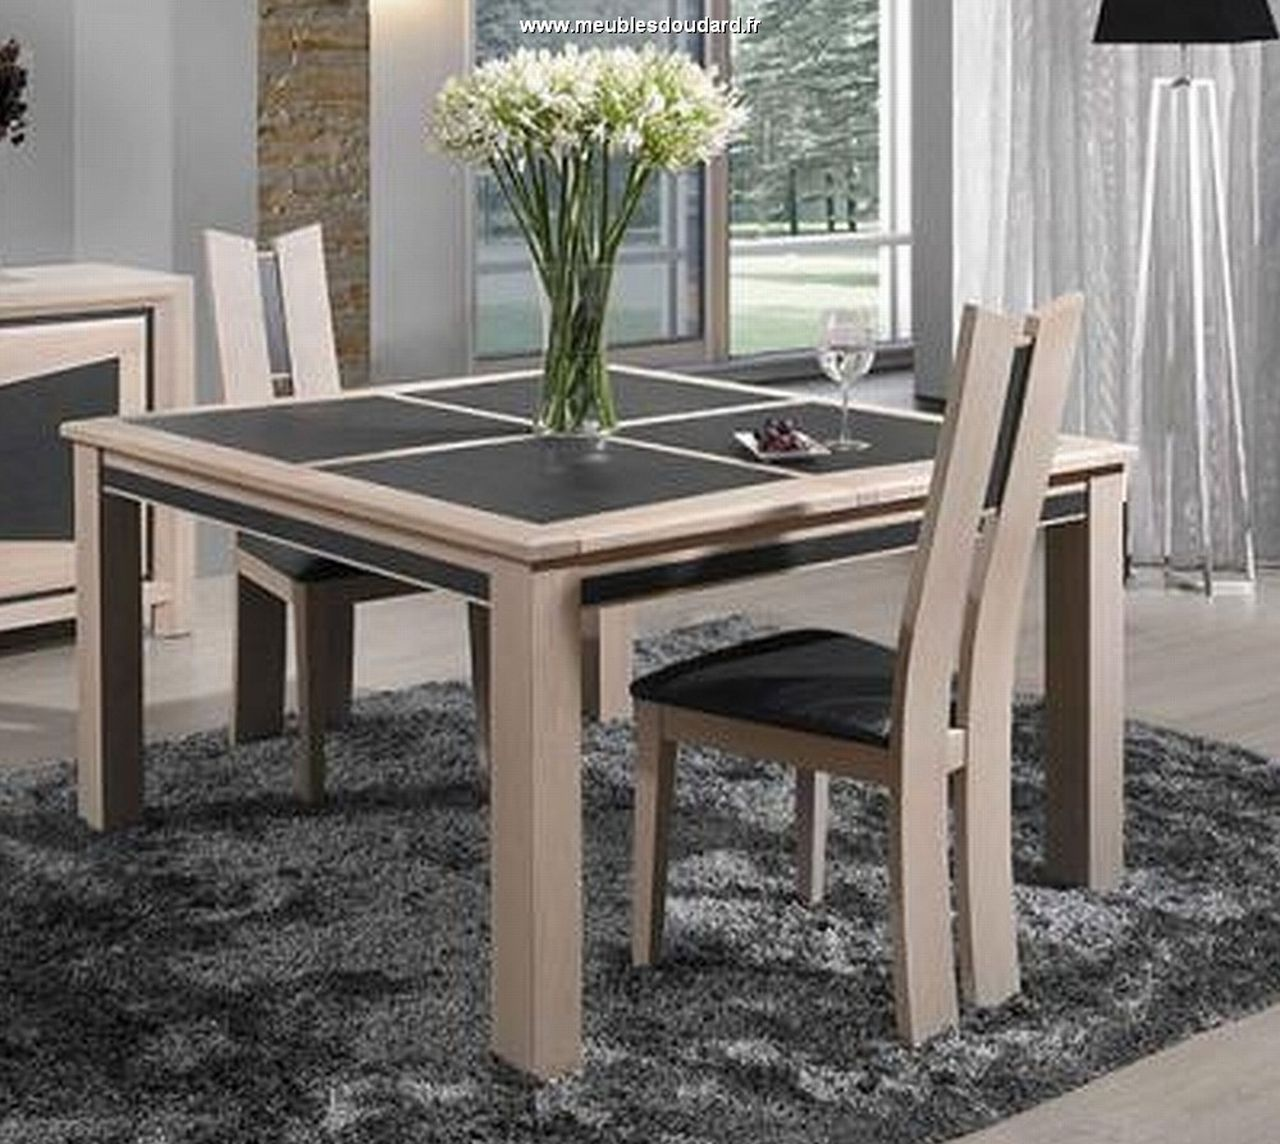 table a manger carree bois maison design. Black Bedroom Furniture Sets. Home Design Ideas